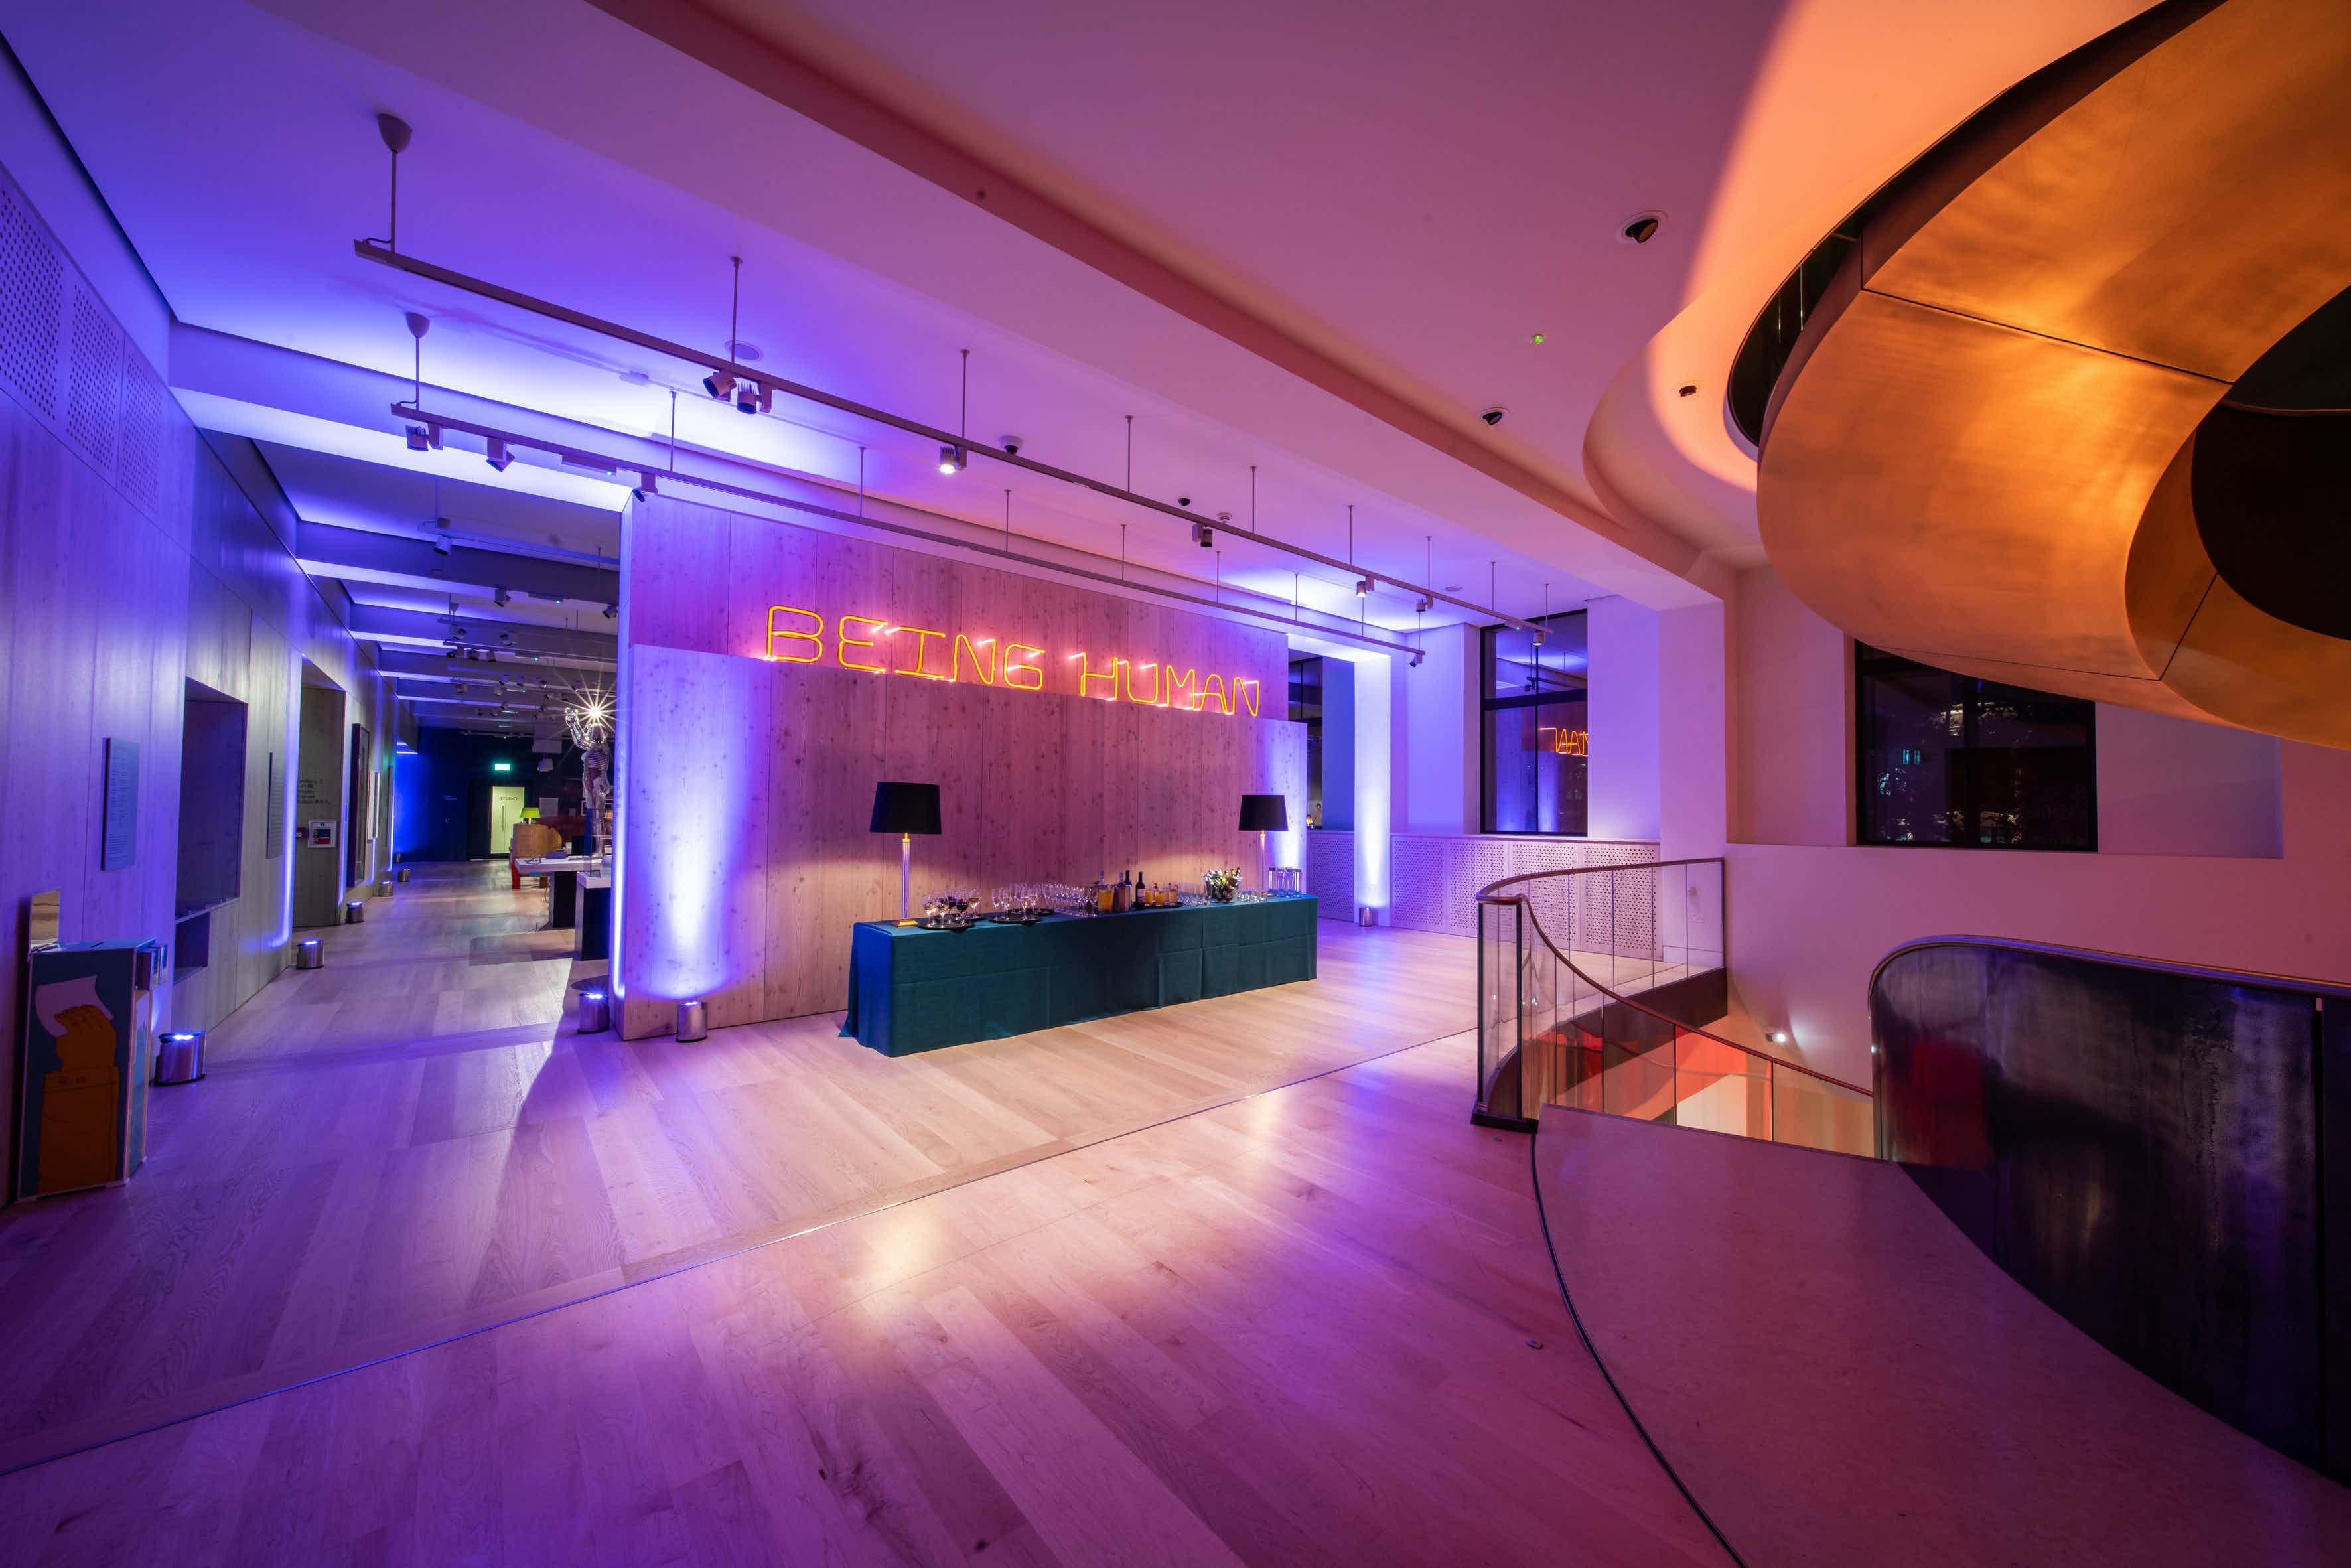 Being Human Gallery, Event Spaces at Wellcome Collection